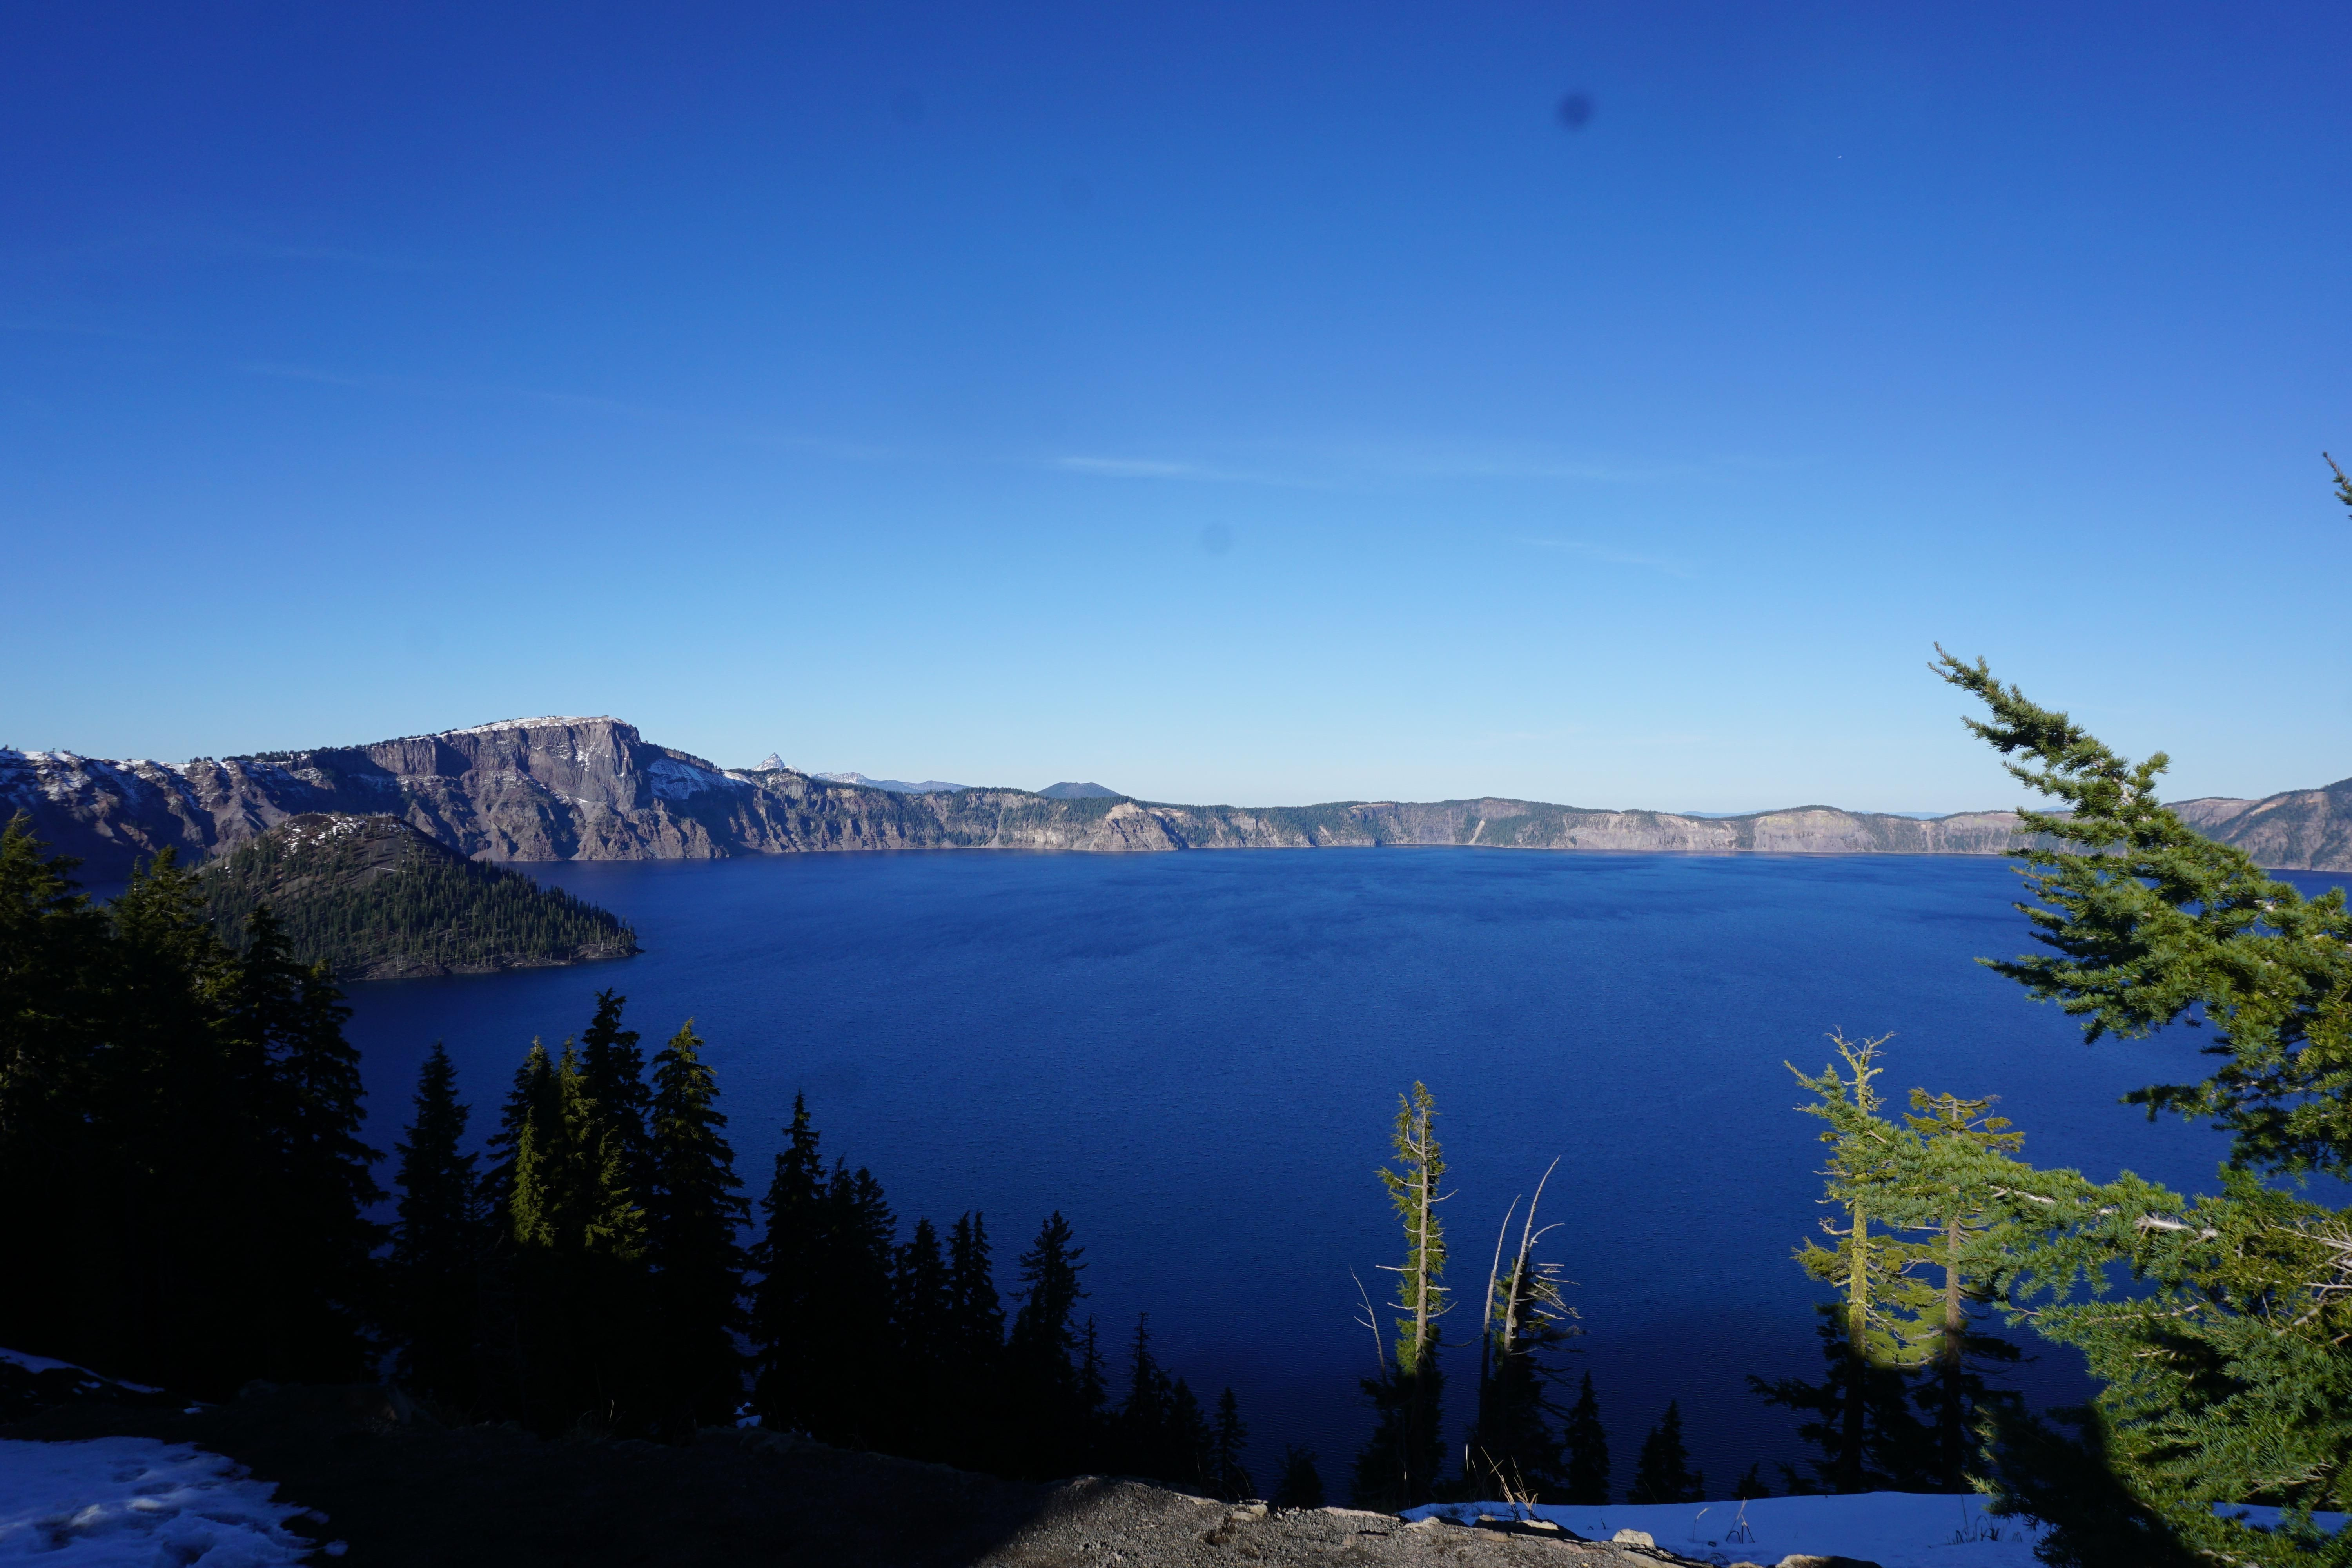 Crater Lake Oregon[OC 1920x1080]. Truly a great place to getaway from the city life. #Music #IndieArtist #Chicago #craterlakeoregon Crater Lake Oregon[OC 1920x1080]. Truly a great place to getaway from the city life. #Music #IndieArtist #Chicago #craterlakeoregon Crater Lake Oregon[OC 1920x1080]. Truly a great place to getaway from the city life. #Music #IndieArtist #Chicago #craterlakeoregon Crater Lake Oregon[OC 1920x1080]. Truly a great place to getaway from the city life. #Music #IndieArtist #craterlakeoregon